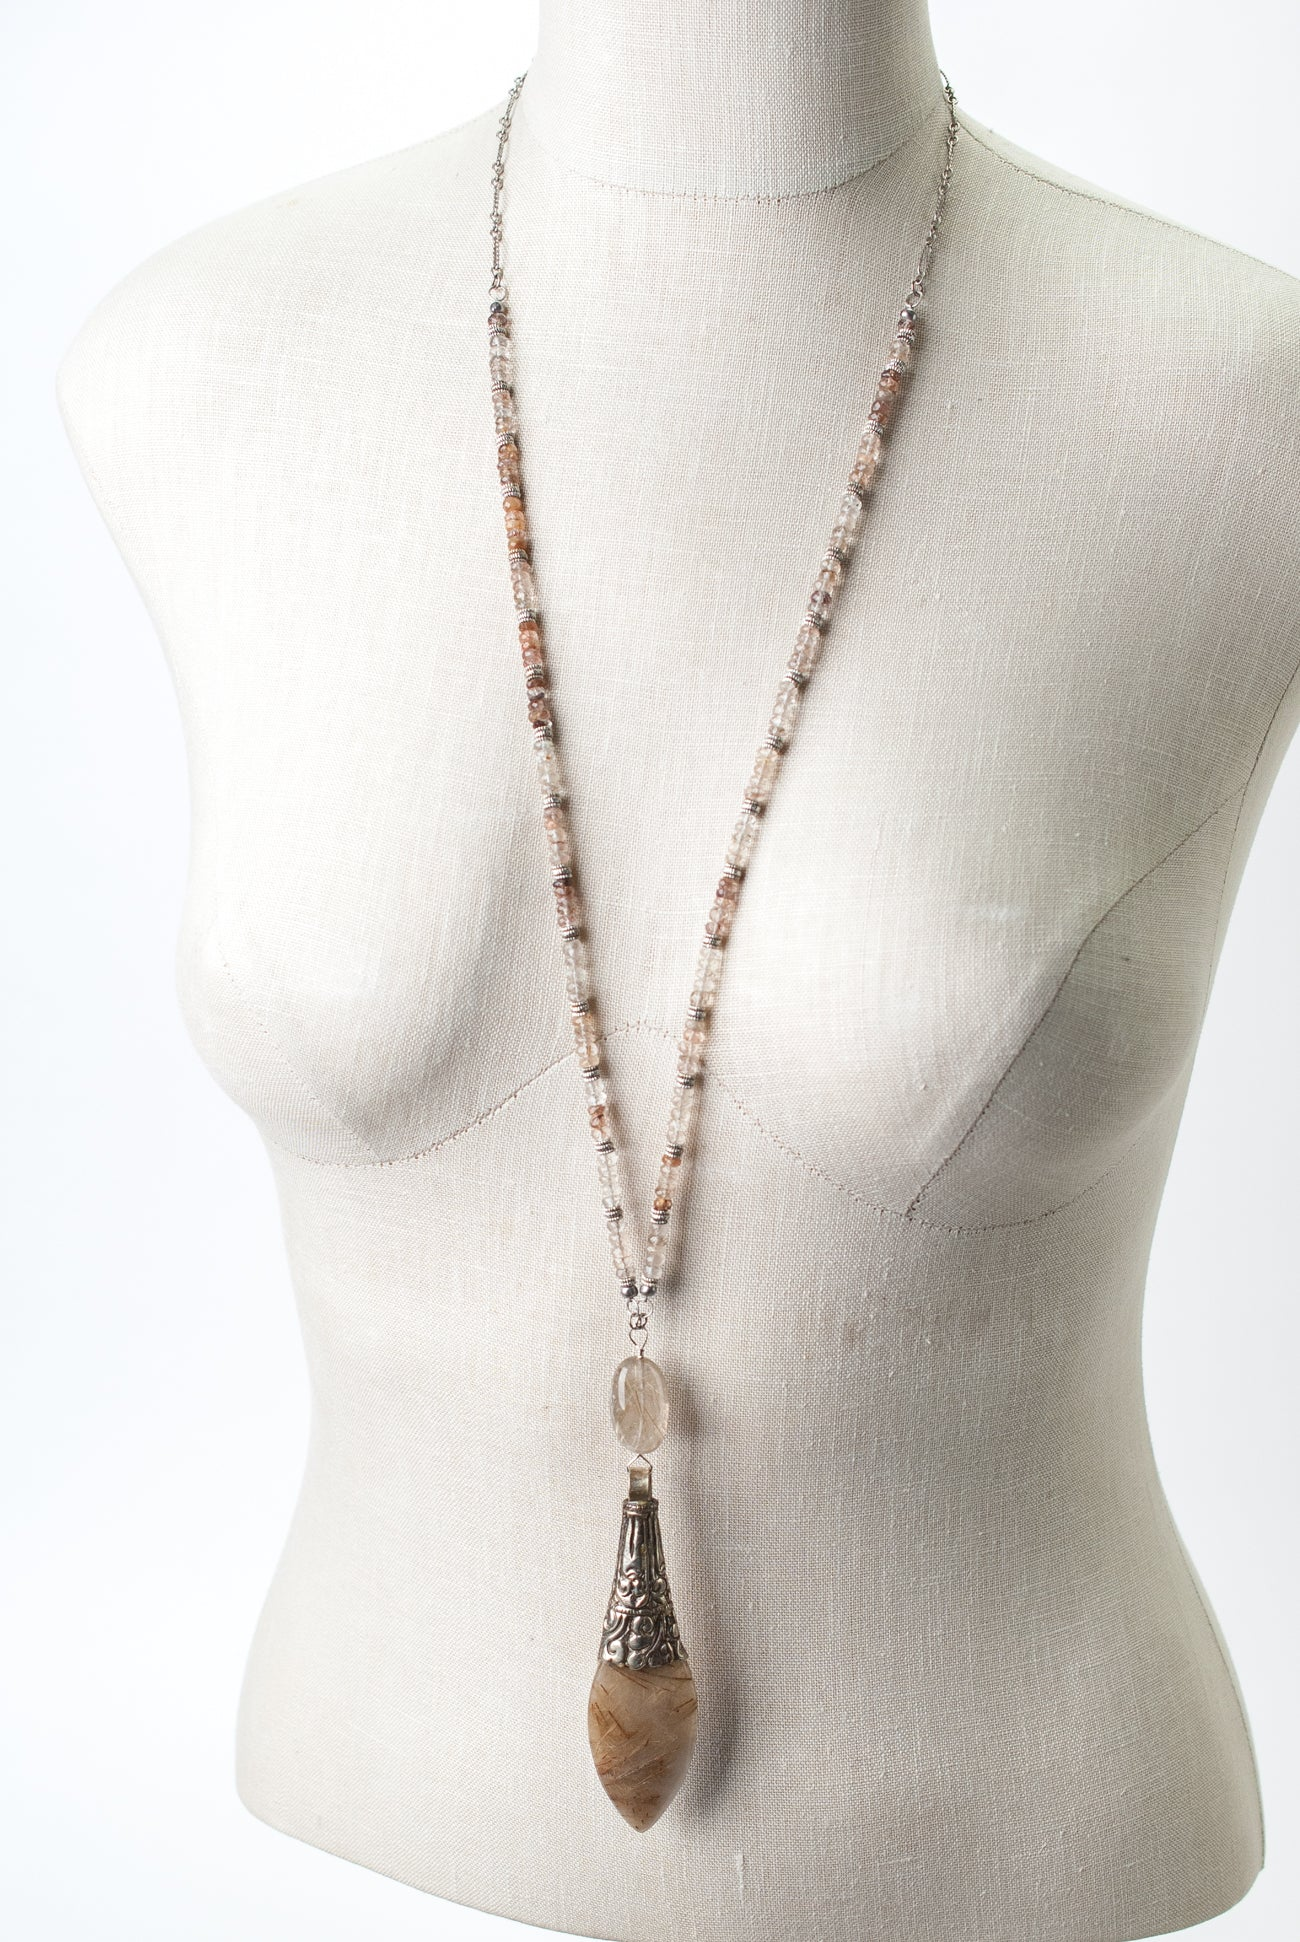 "One of a Kind 32-34"" Golden Rutilated Quartz Focal Necklace"